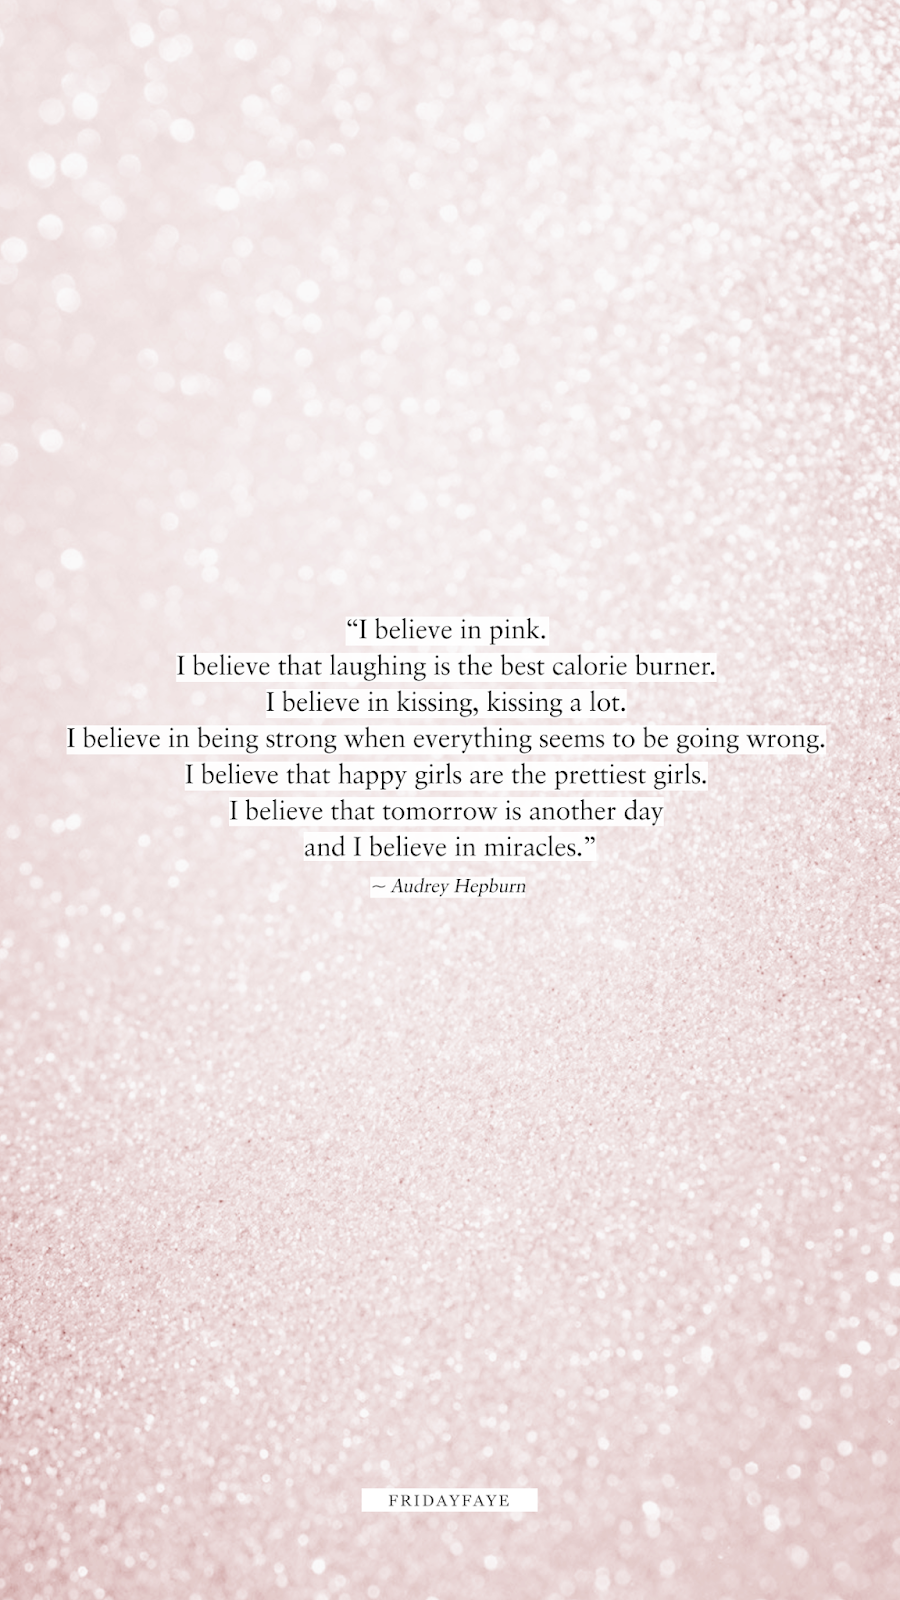 """Audrey Hepburn """"I believe in pink"""" quote on a pink glitter background"""